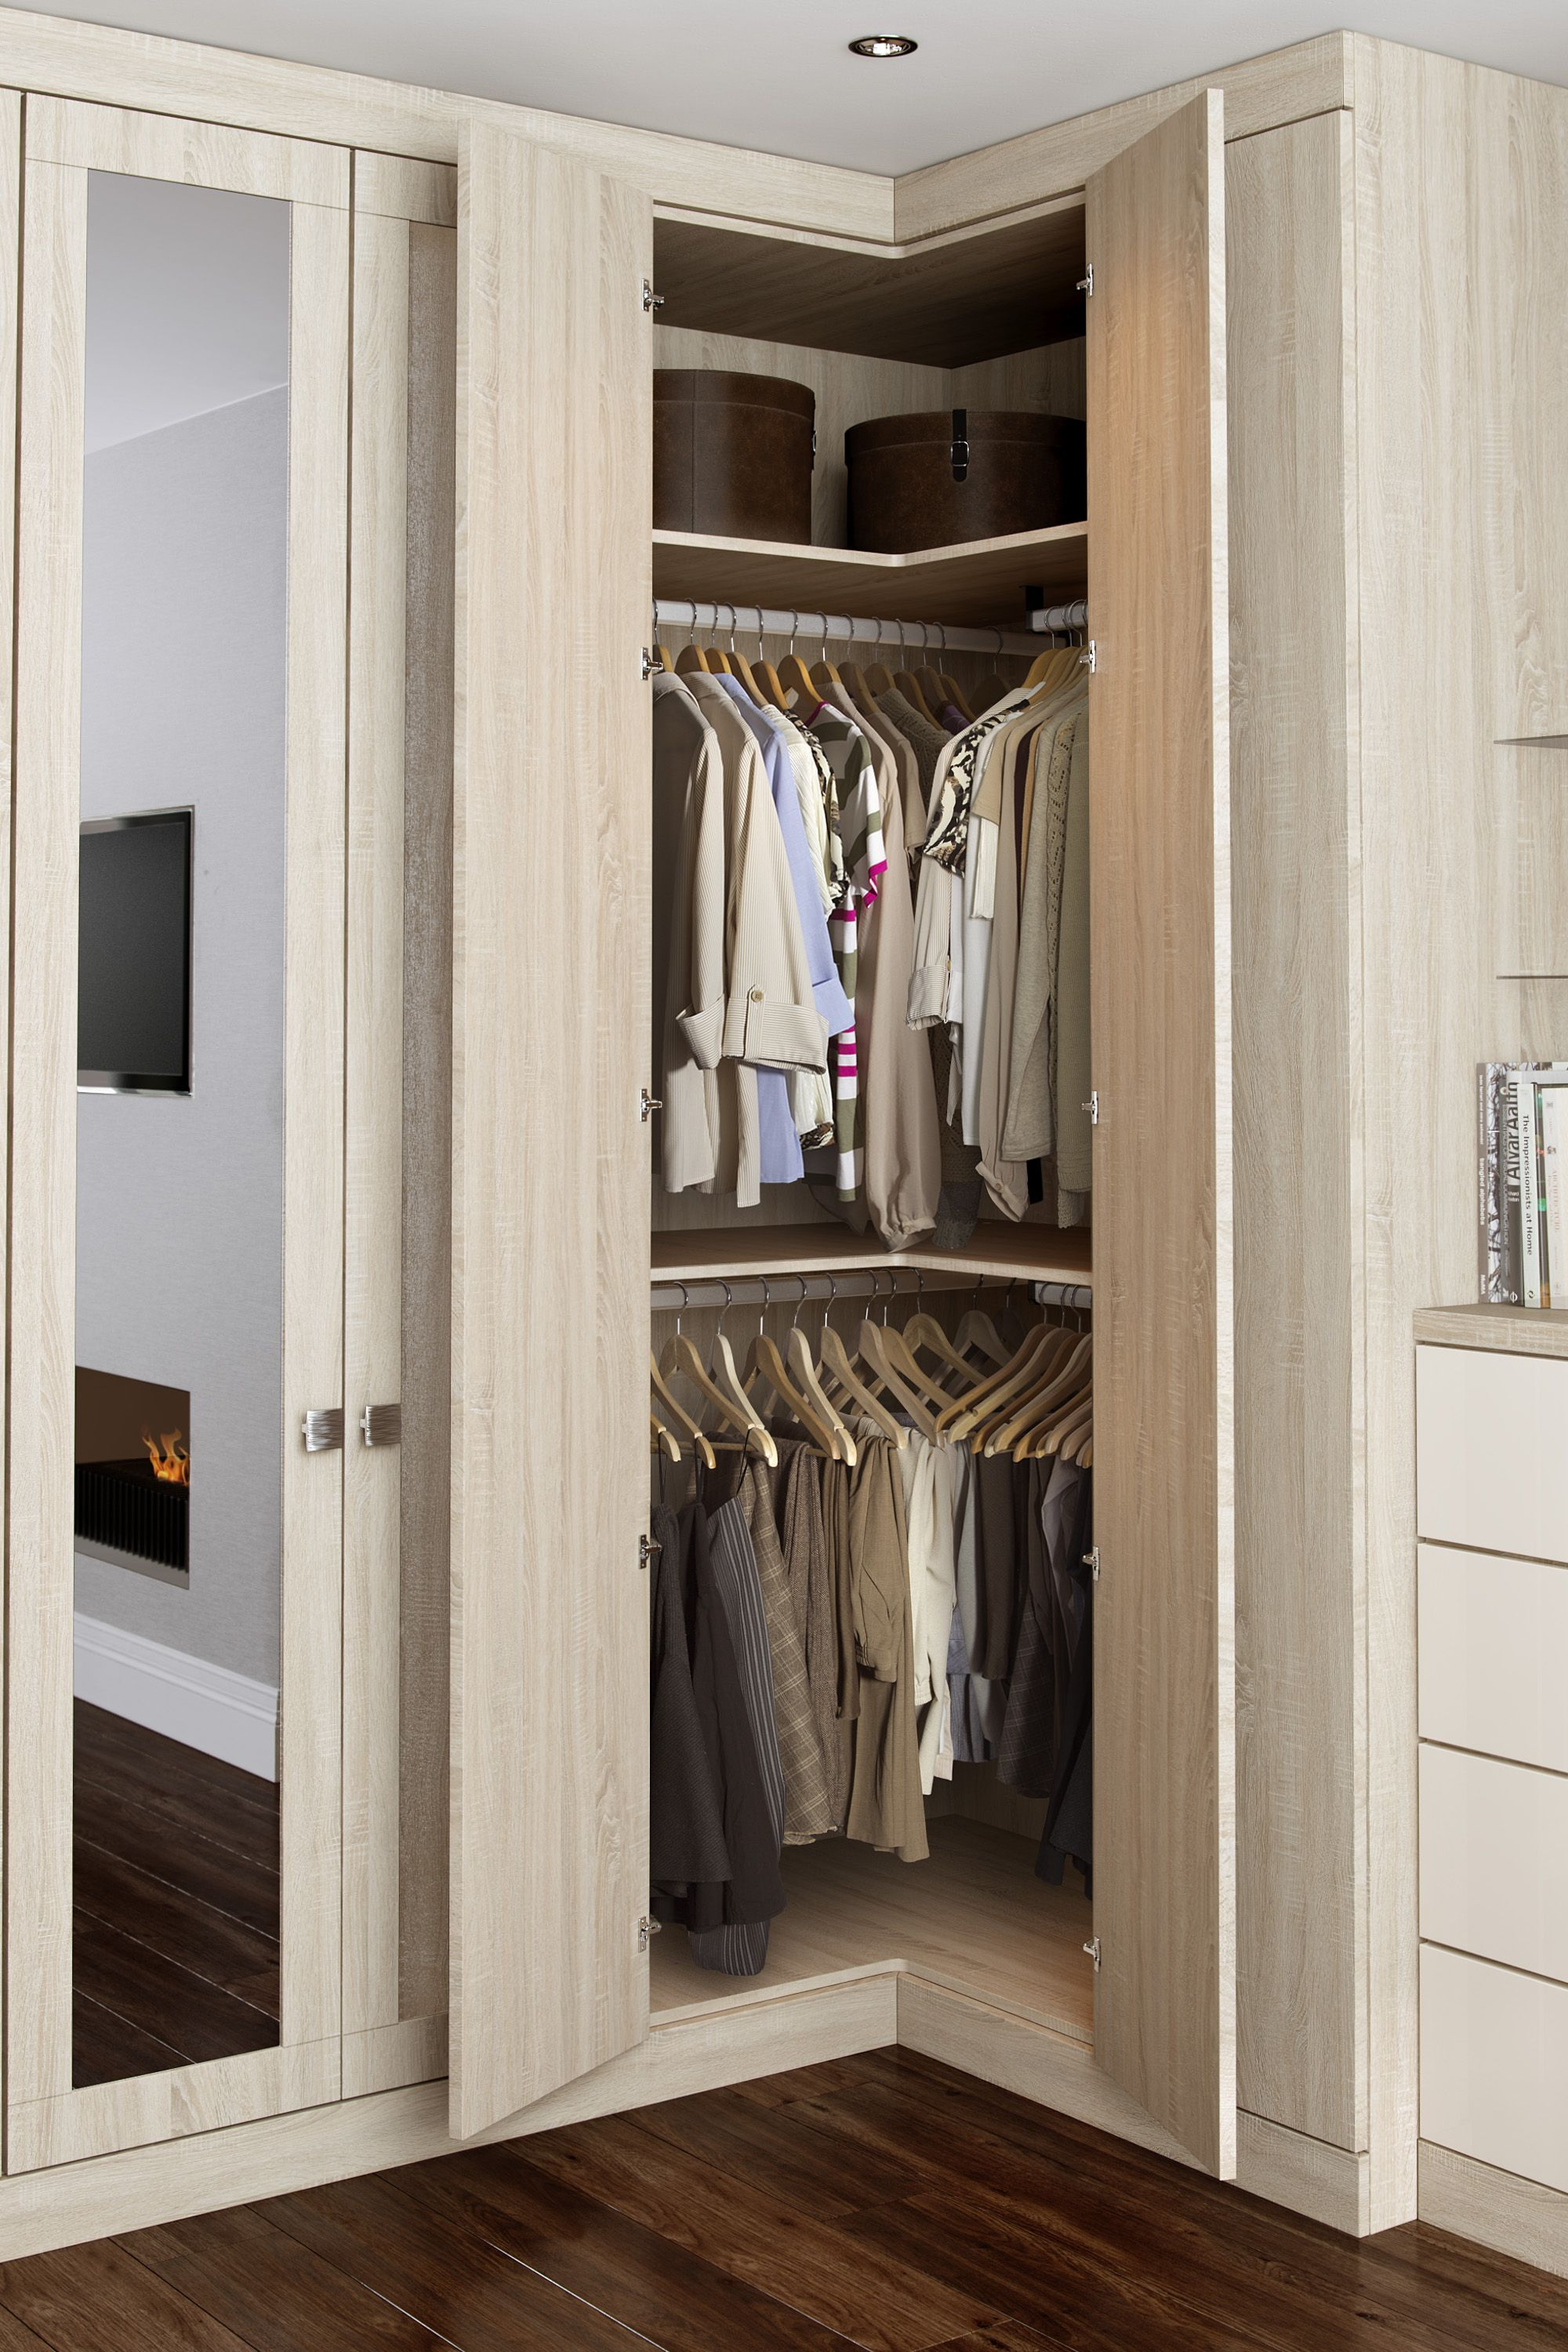 wardrobes how wardrobe pin closetbuilt to build drywall in built storage and ideas a closet wardrobewardrobe